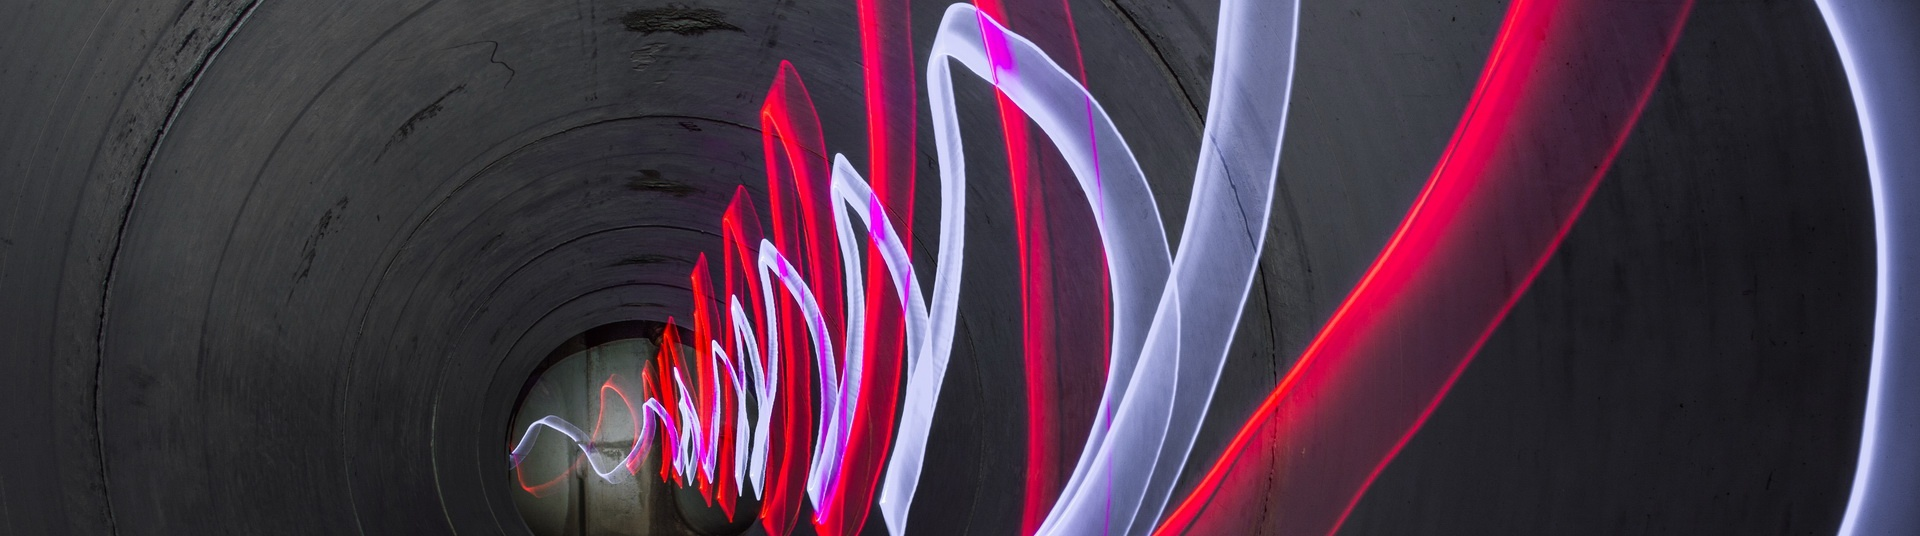 Pulse, by Darkday on Flickr, Creative Commons